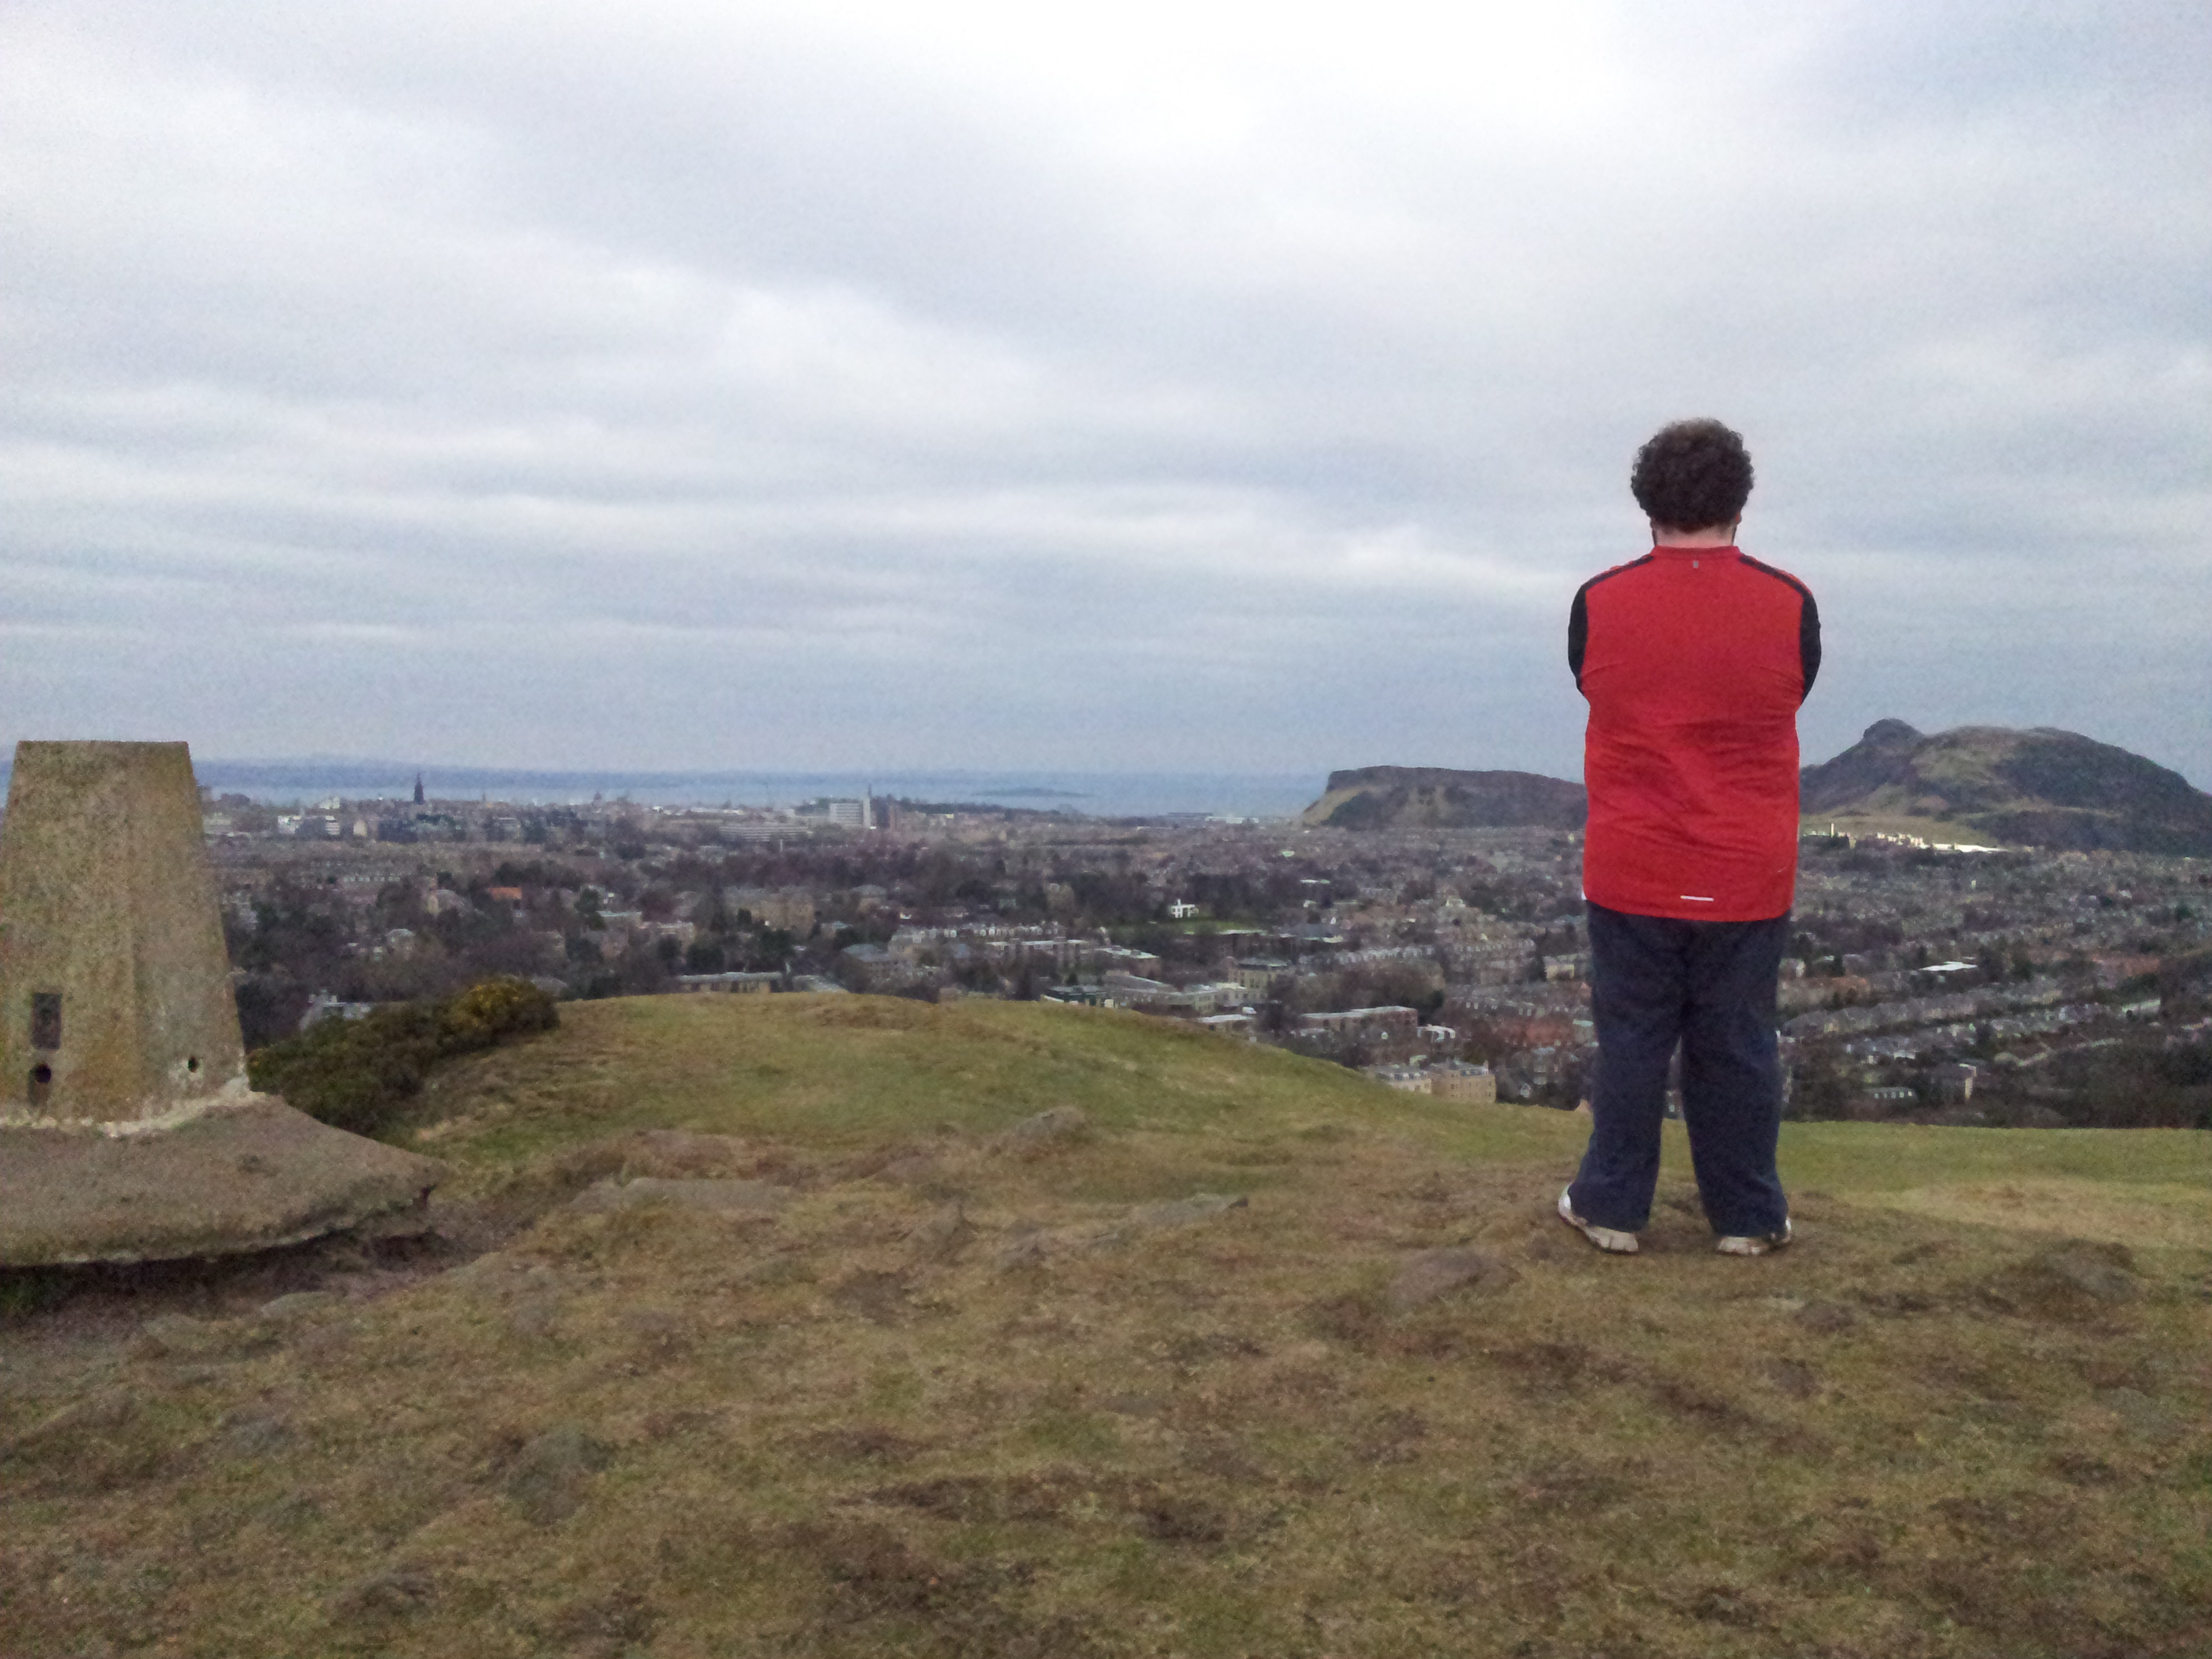 Finlay and His City